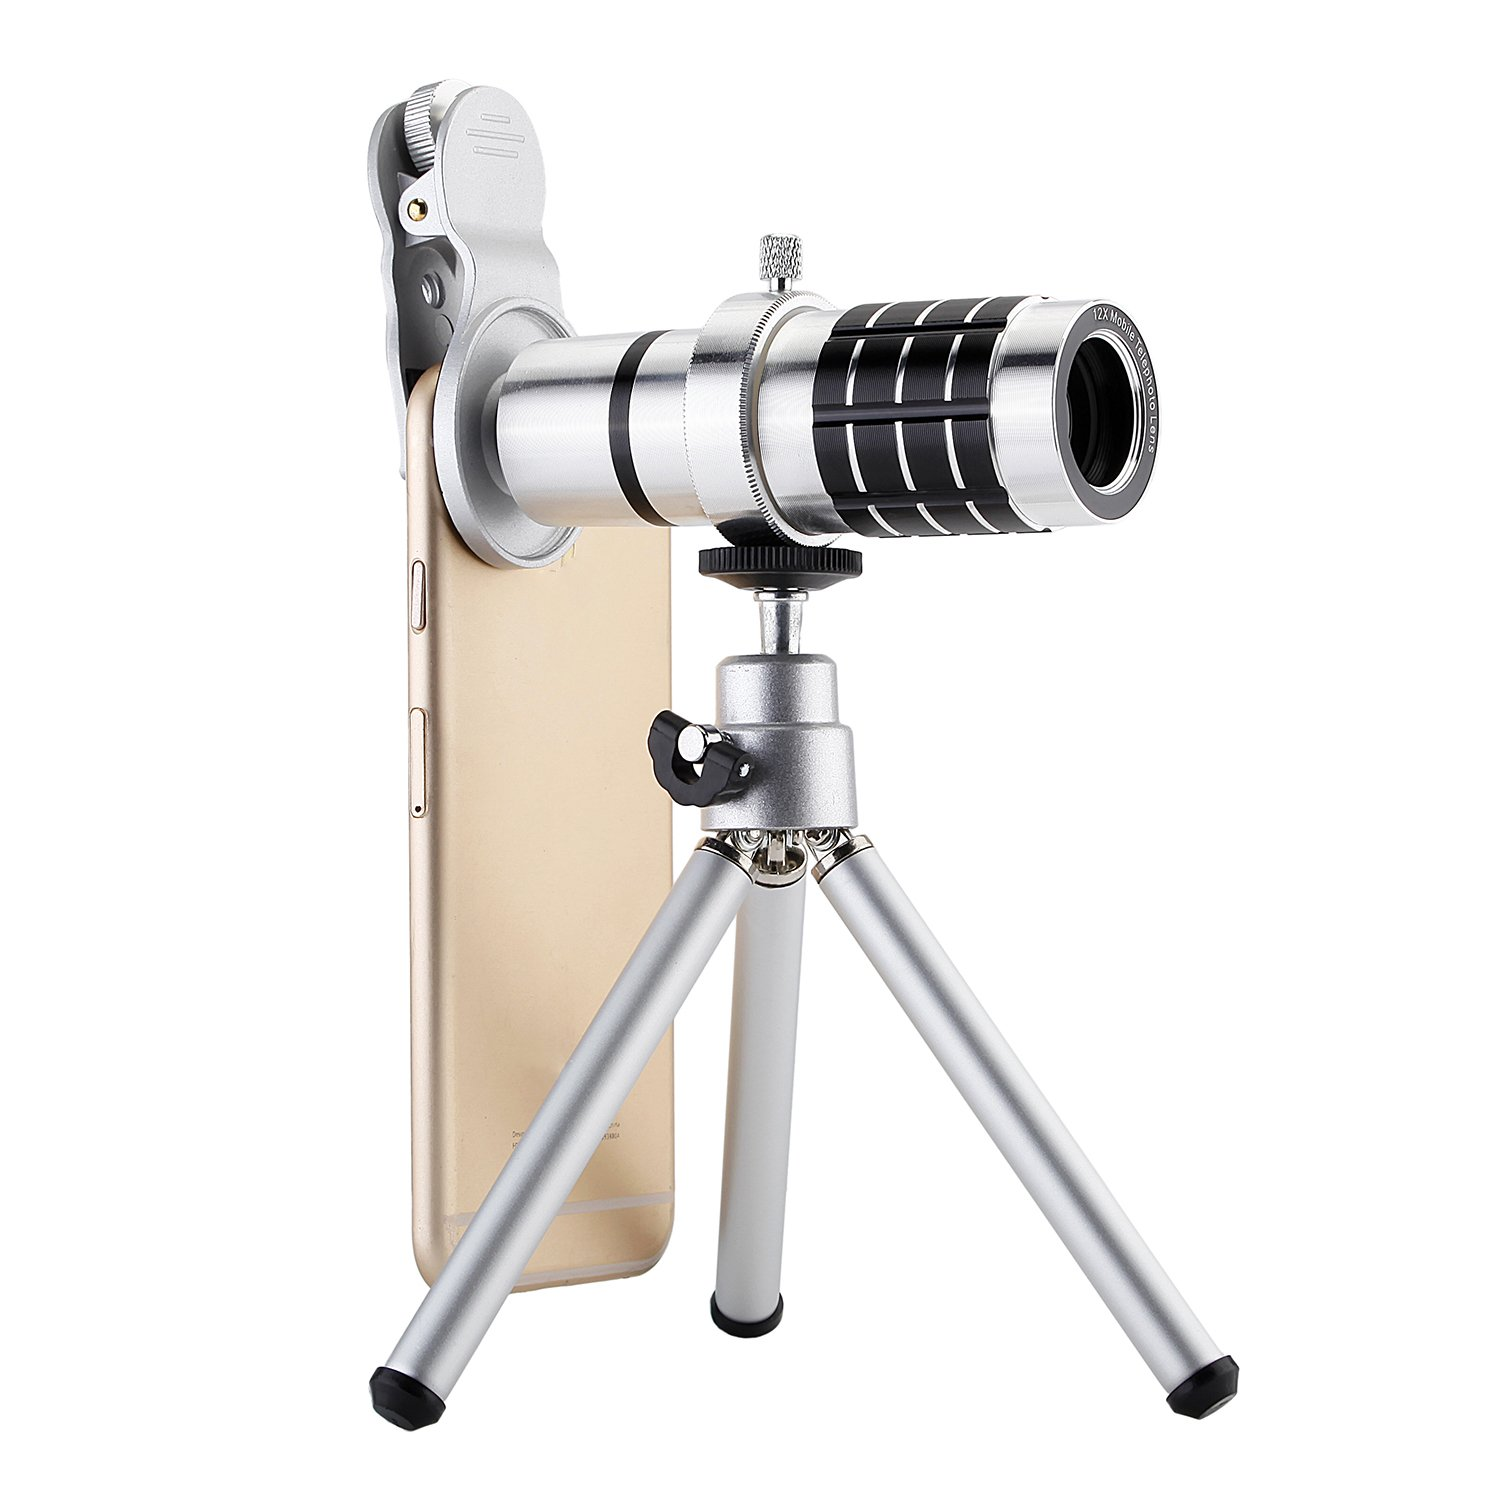 SODIAL Camera Lens Universal Clip-On Phone 12X Optical Zoom Telephoto Lens for iPhone Samsung Huawei Ipad Tablet PC Laptops(Silver)